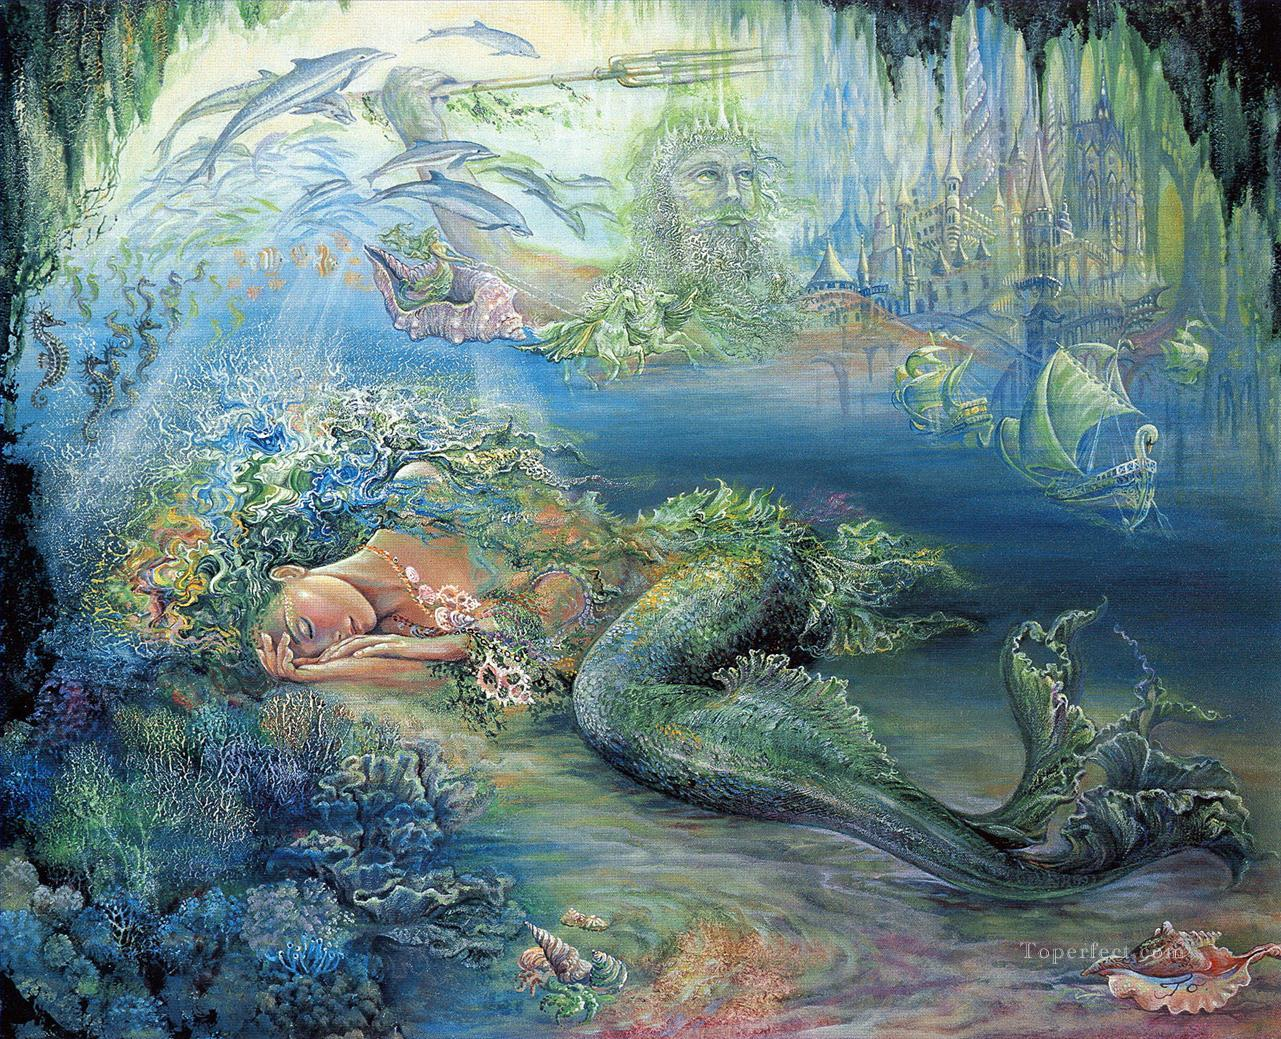 JW dreams of atlantis Fantasy Painting in Oil for Sale